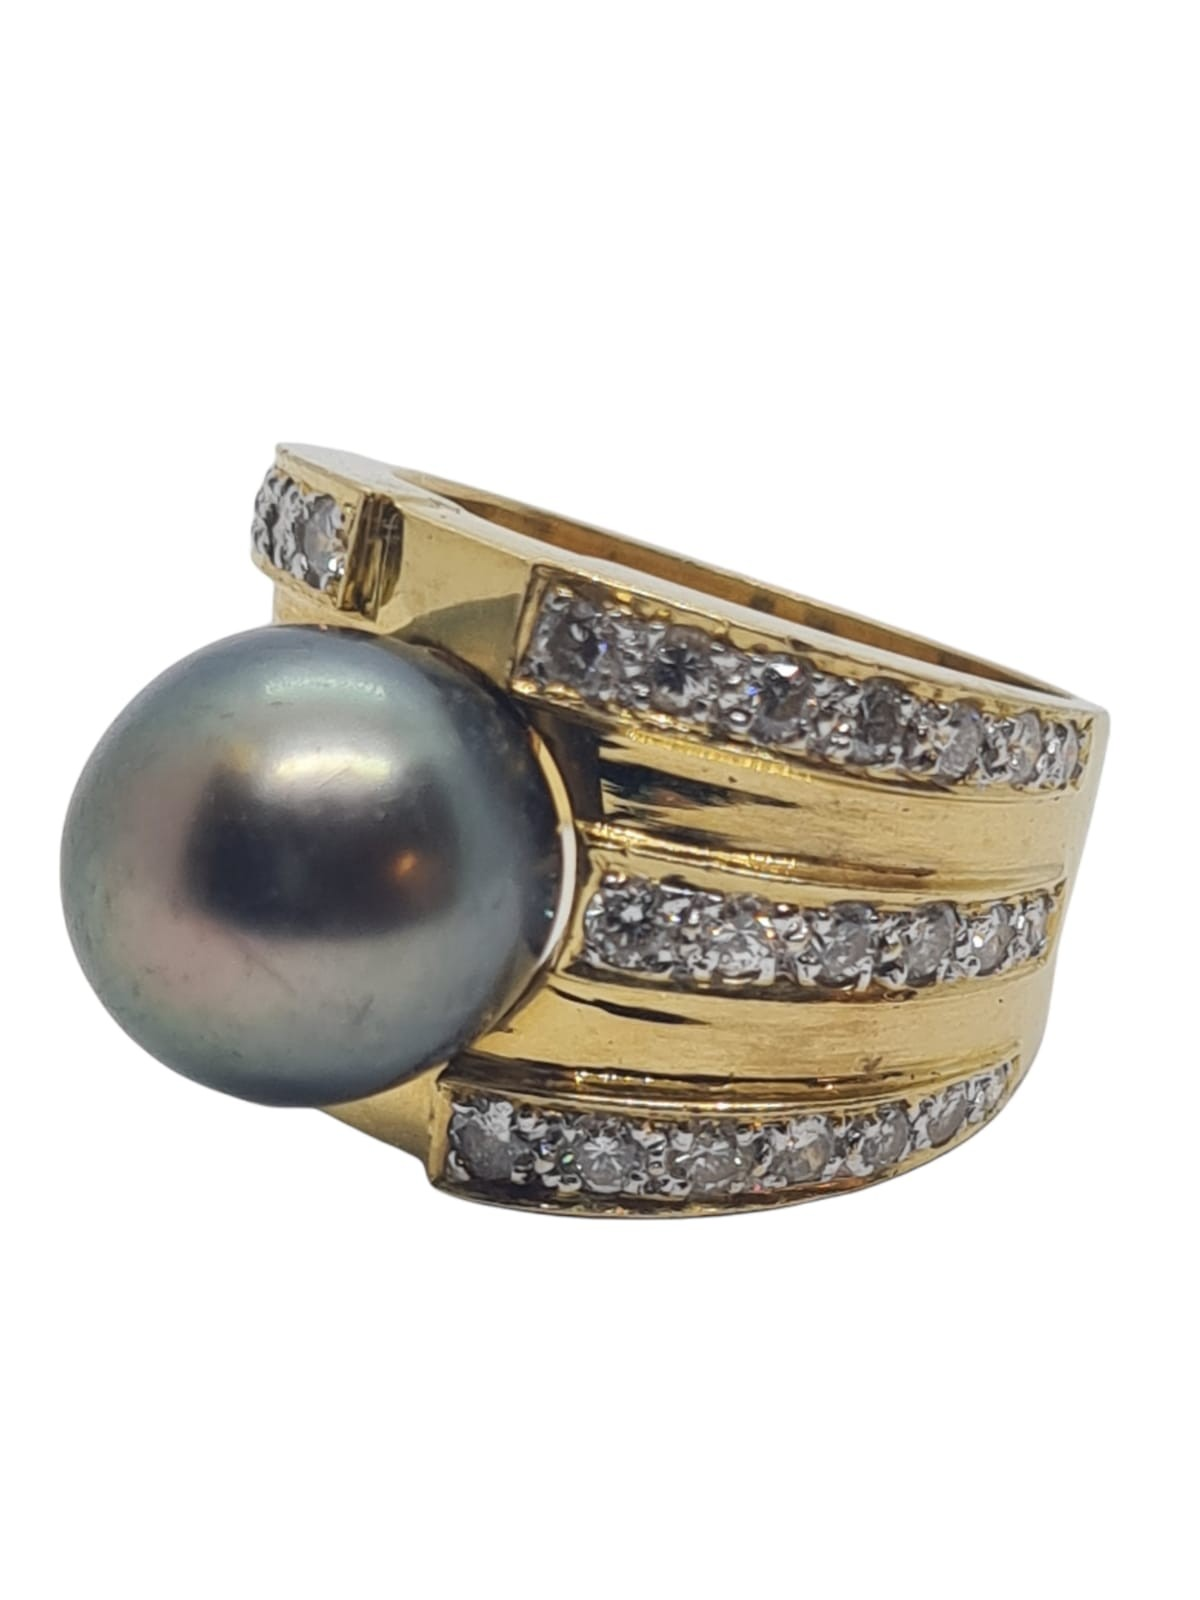 18k yellow gold with Tahitian pearl centre and decorated with 1.50ct diamonds approx, weight 12.8g - Image 2 of 9